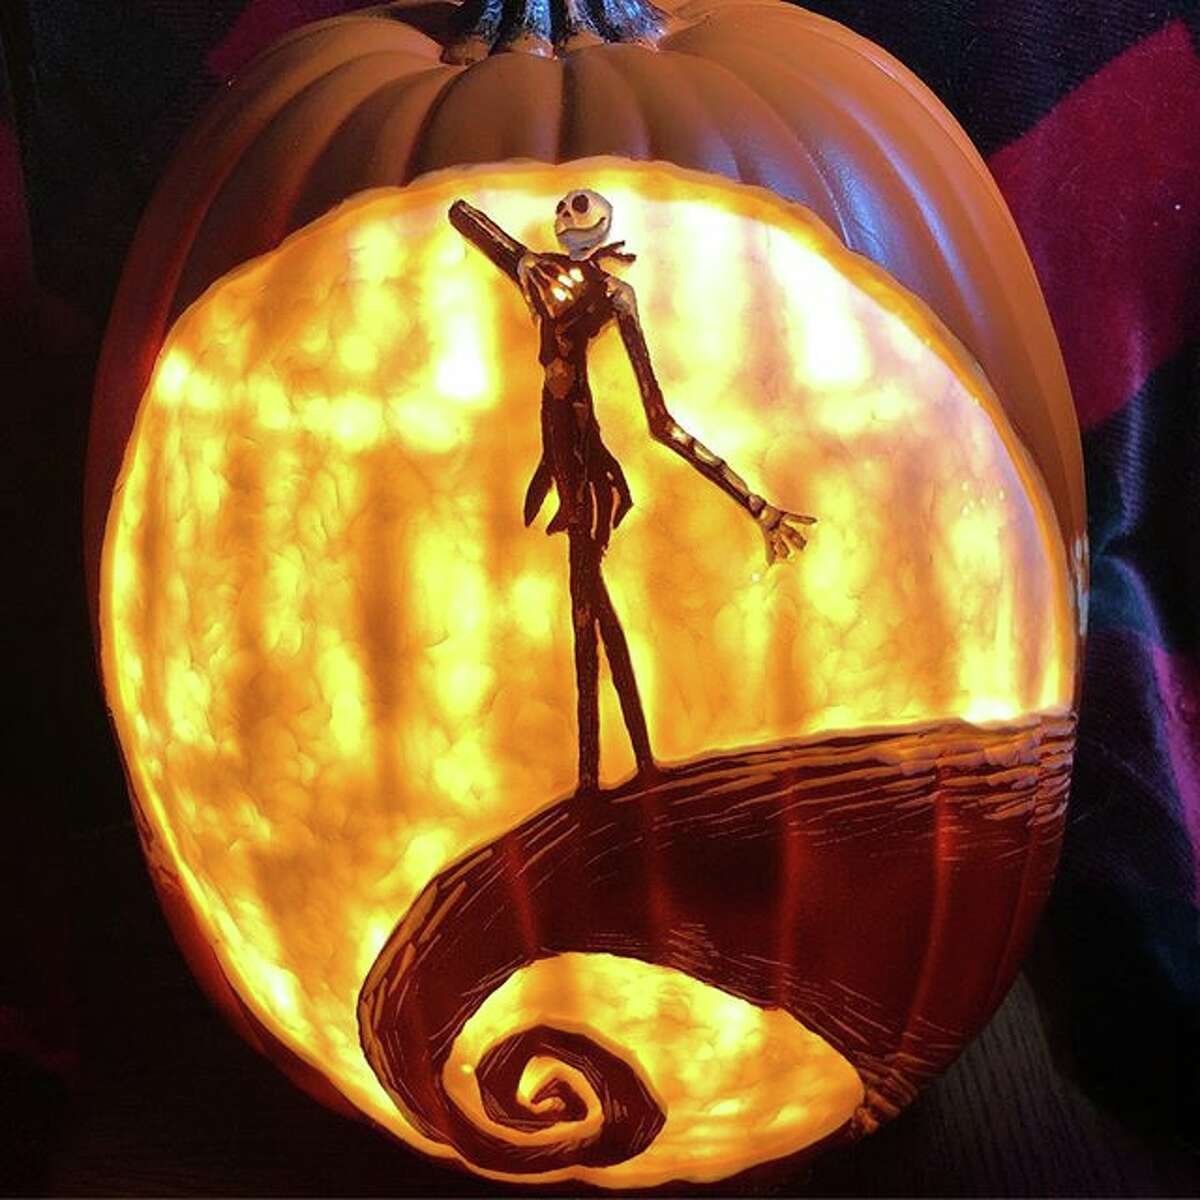 """PHOTOS: Houston woman creates intricate pumpkin designs with pop culture themes Courtney Wunder spends as much as eight hours carving complex designs in foam pumpkins for Halloween. This year, she created pumpkins with """"The Nightmare Before Christmas"""" and """"Harry Potter"""" themes, among other pop culture references. >>> See more designs from Wunder's Instagram"""